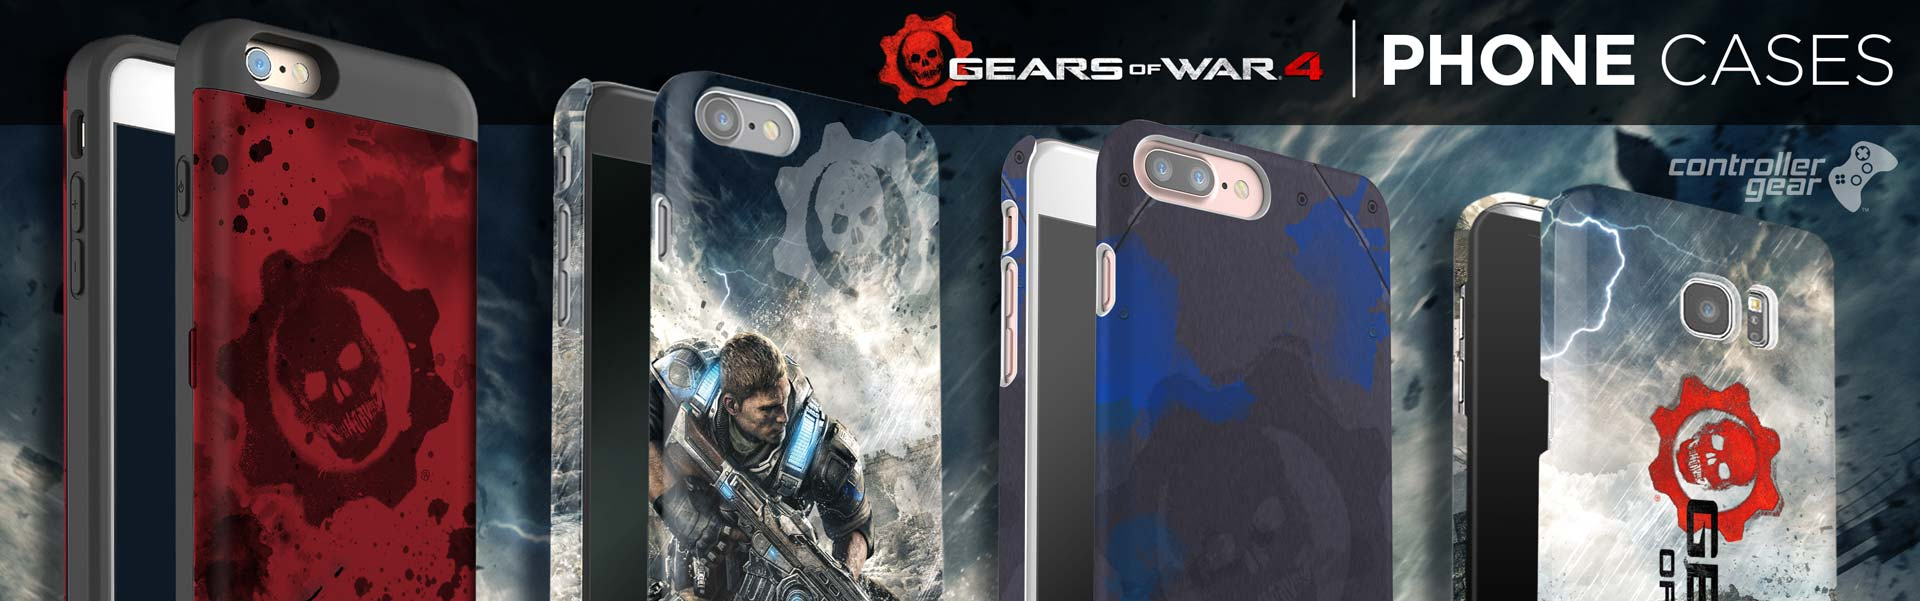 Gears of War 4 Phone Cases